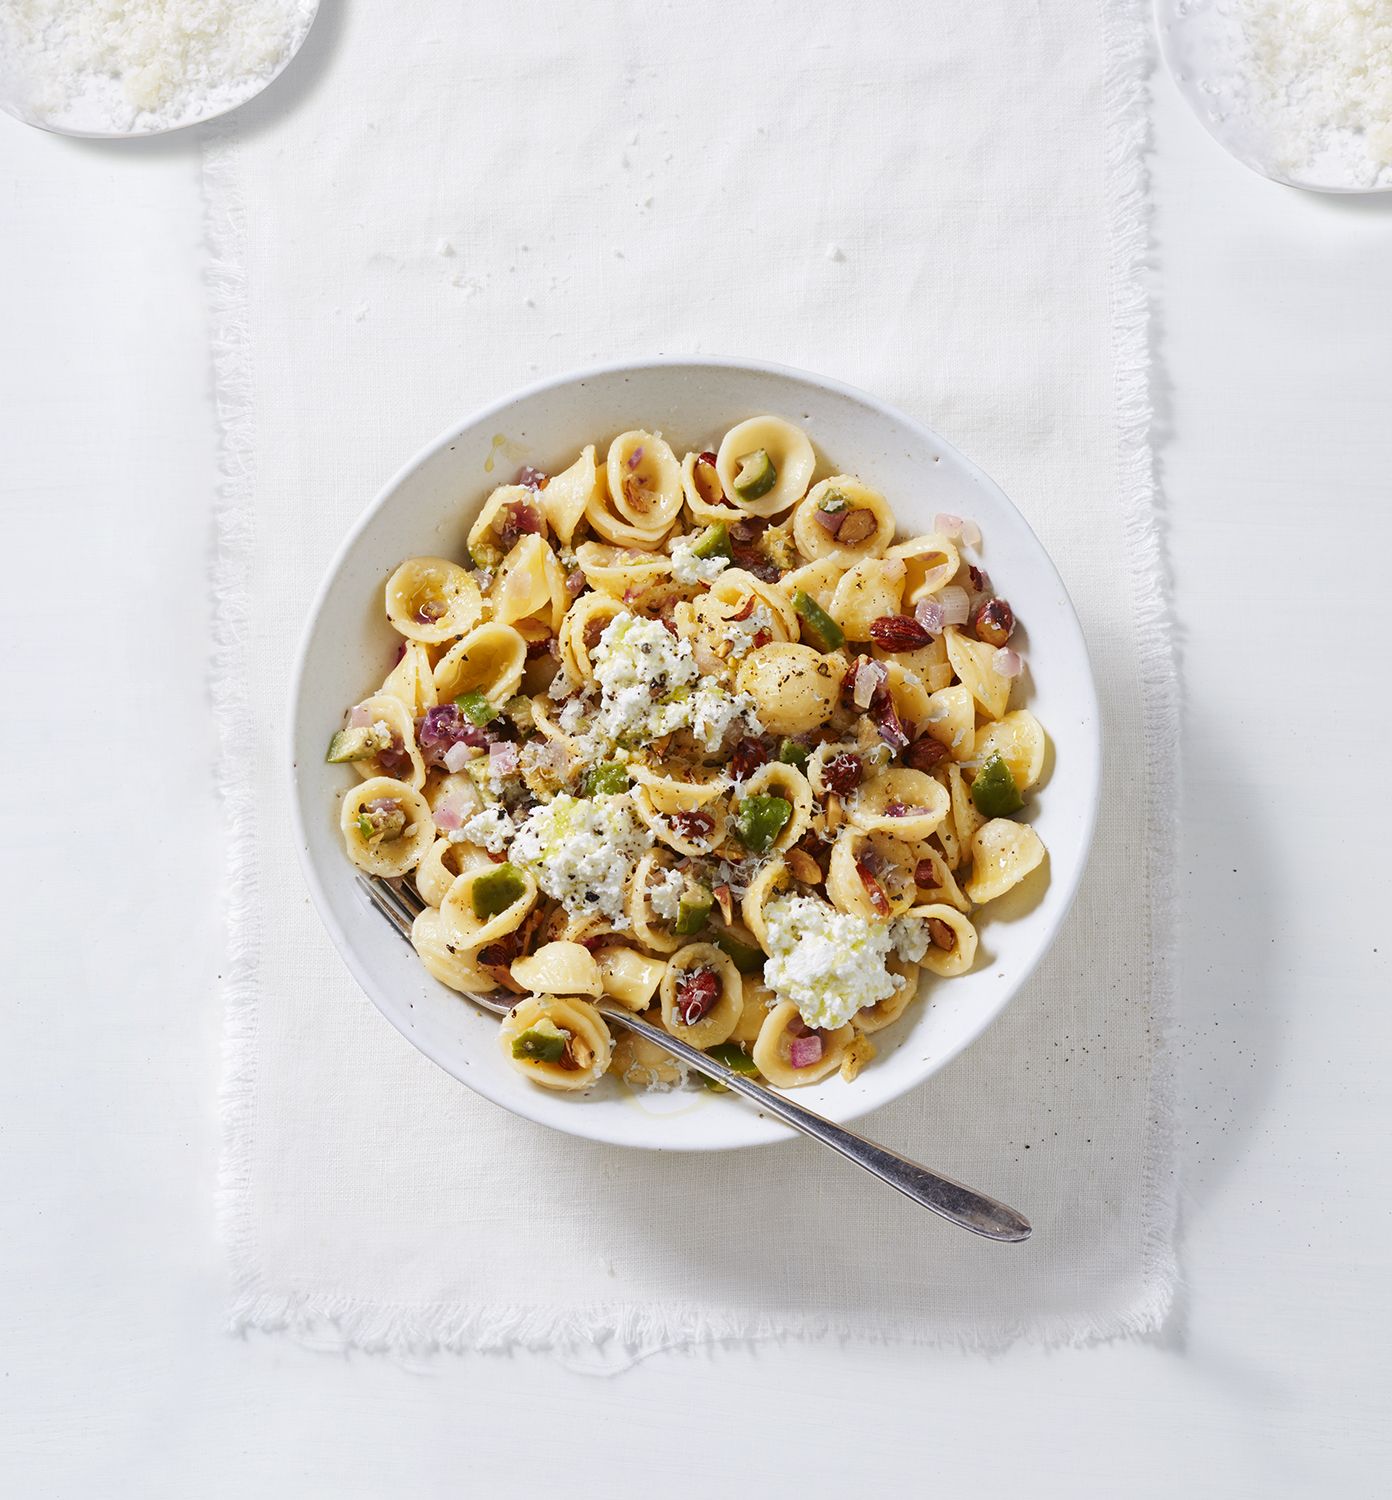 Orecchiette with Red Onions, Almonds, and Green Olives